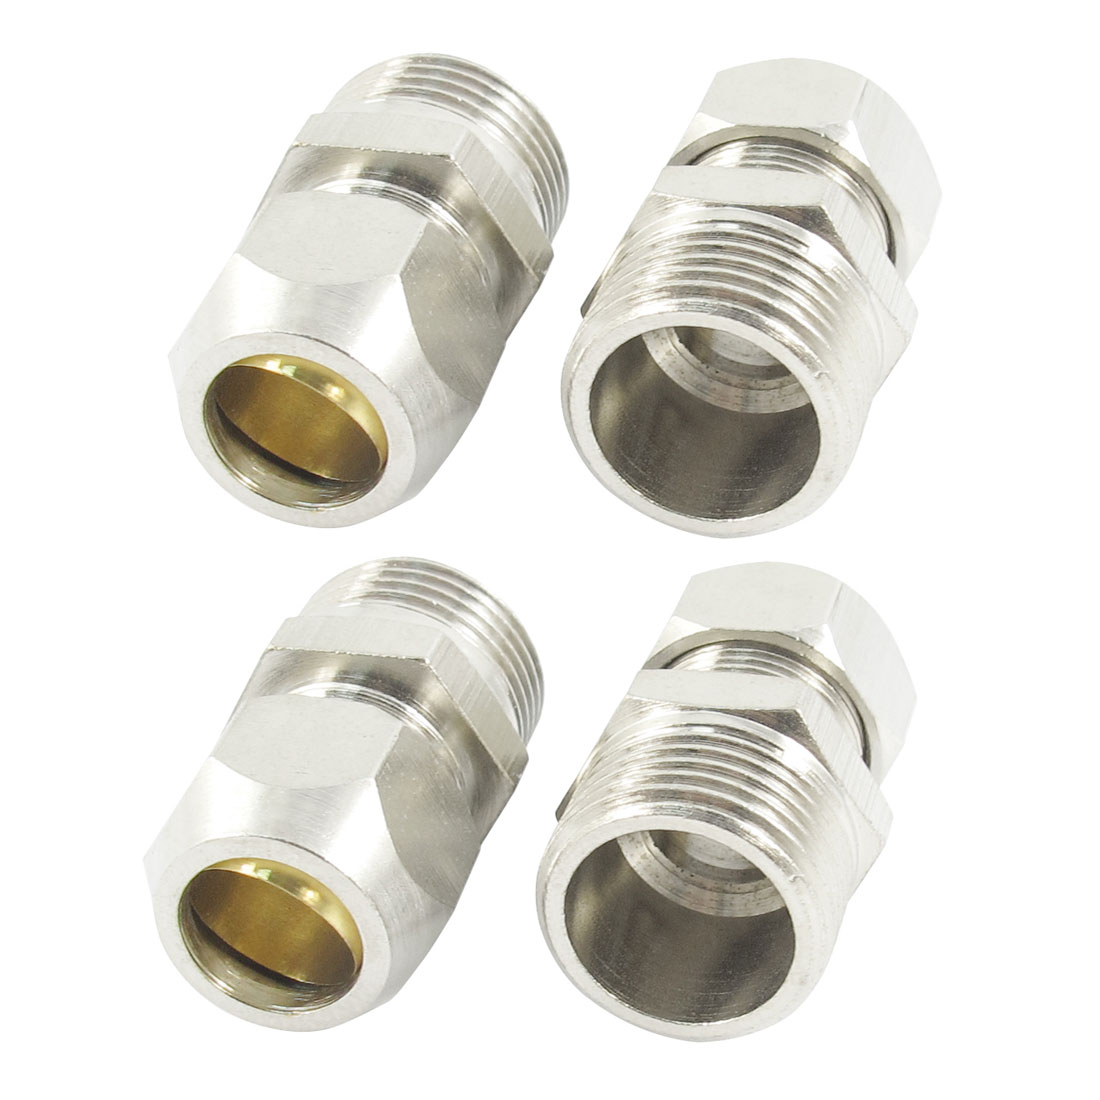 4Pcs 3/8PT Male Thread to 10mm Metal Pipe Dia Straight Tube Connector Quick Release Coupler Fitting Joint Fastener